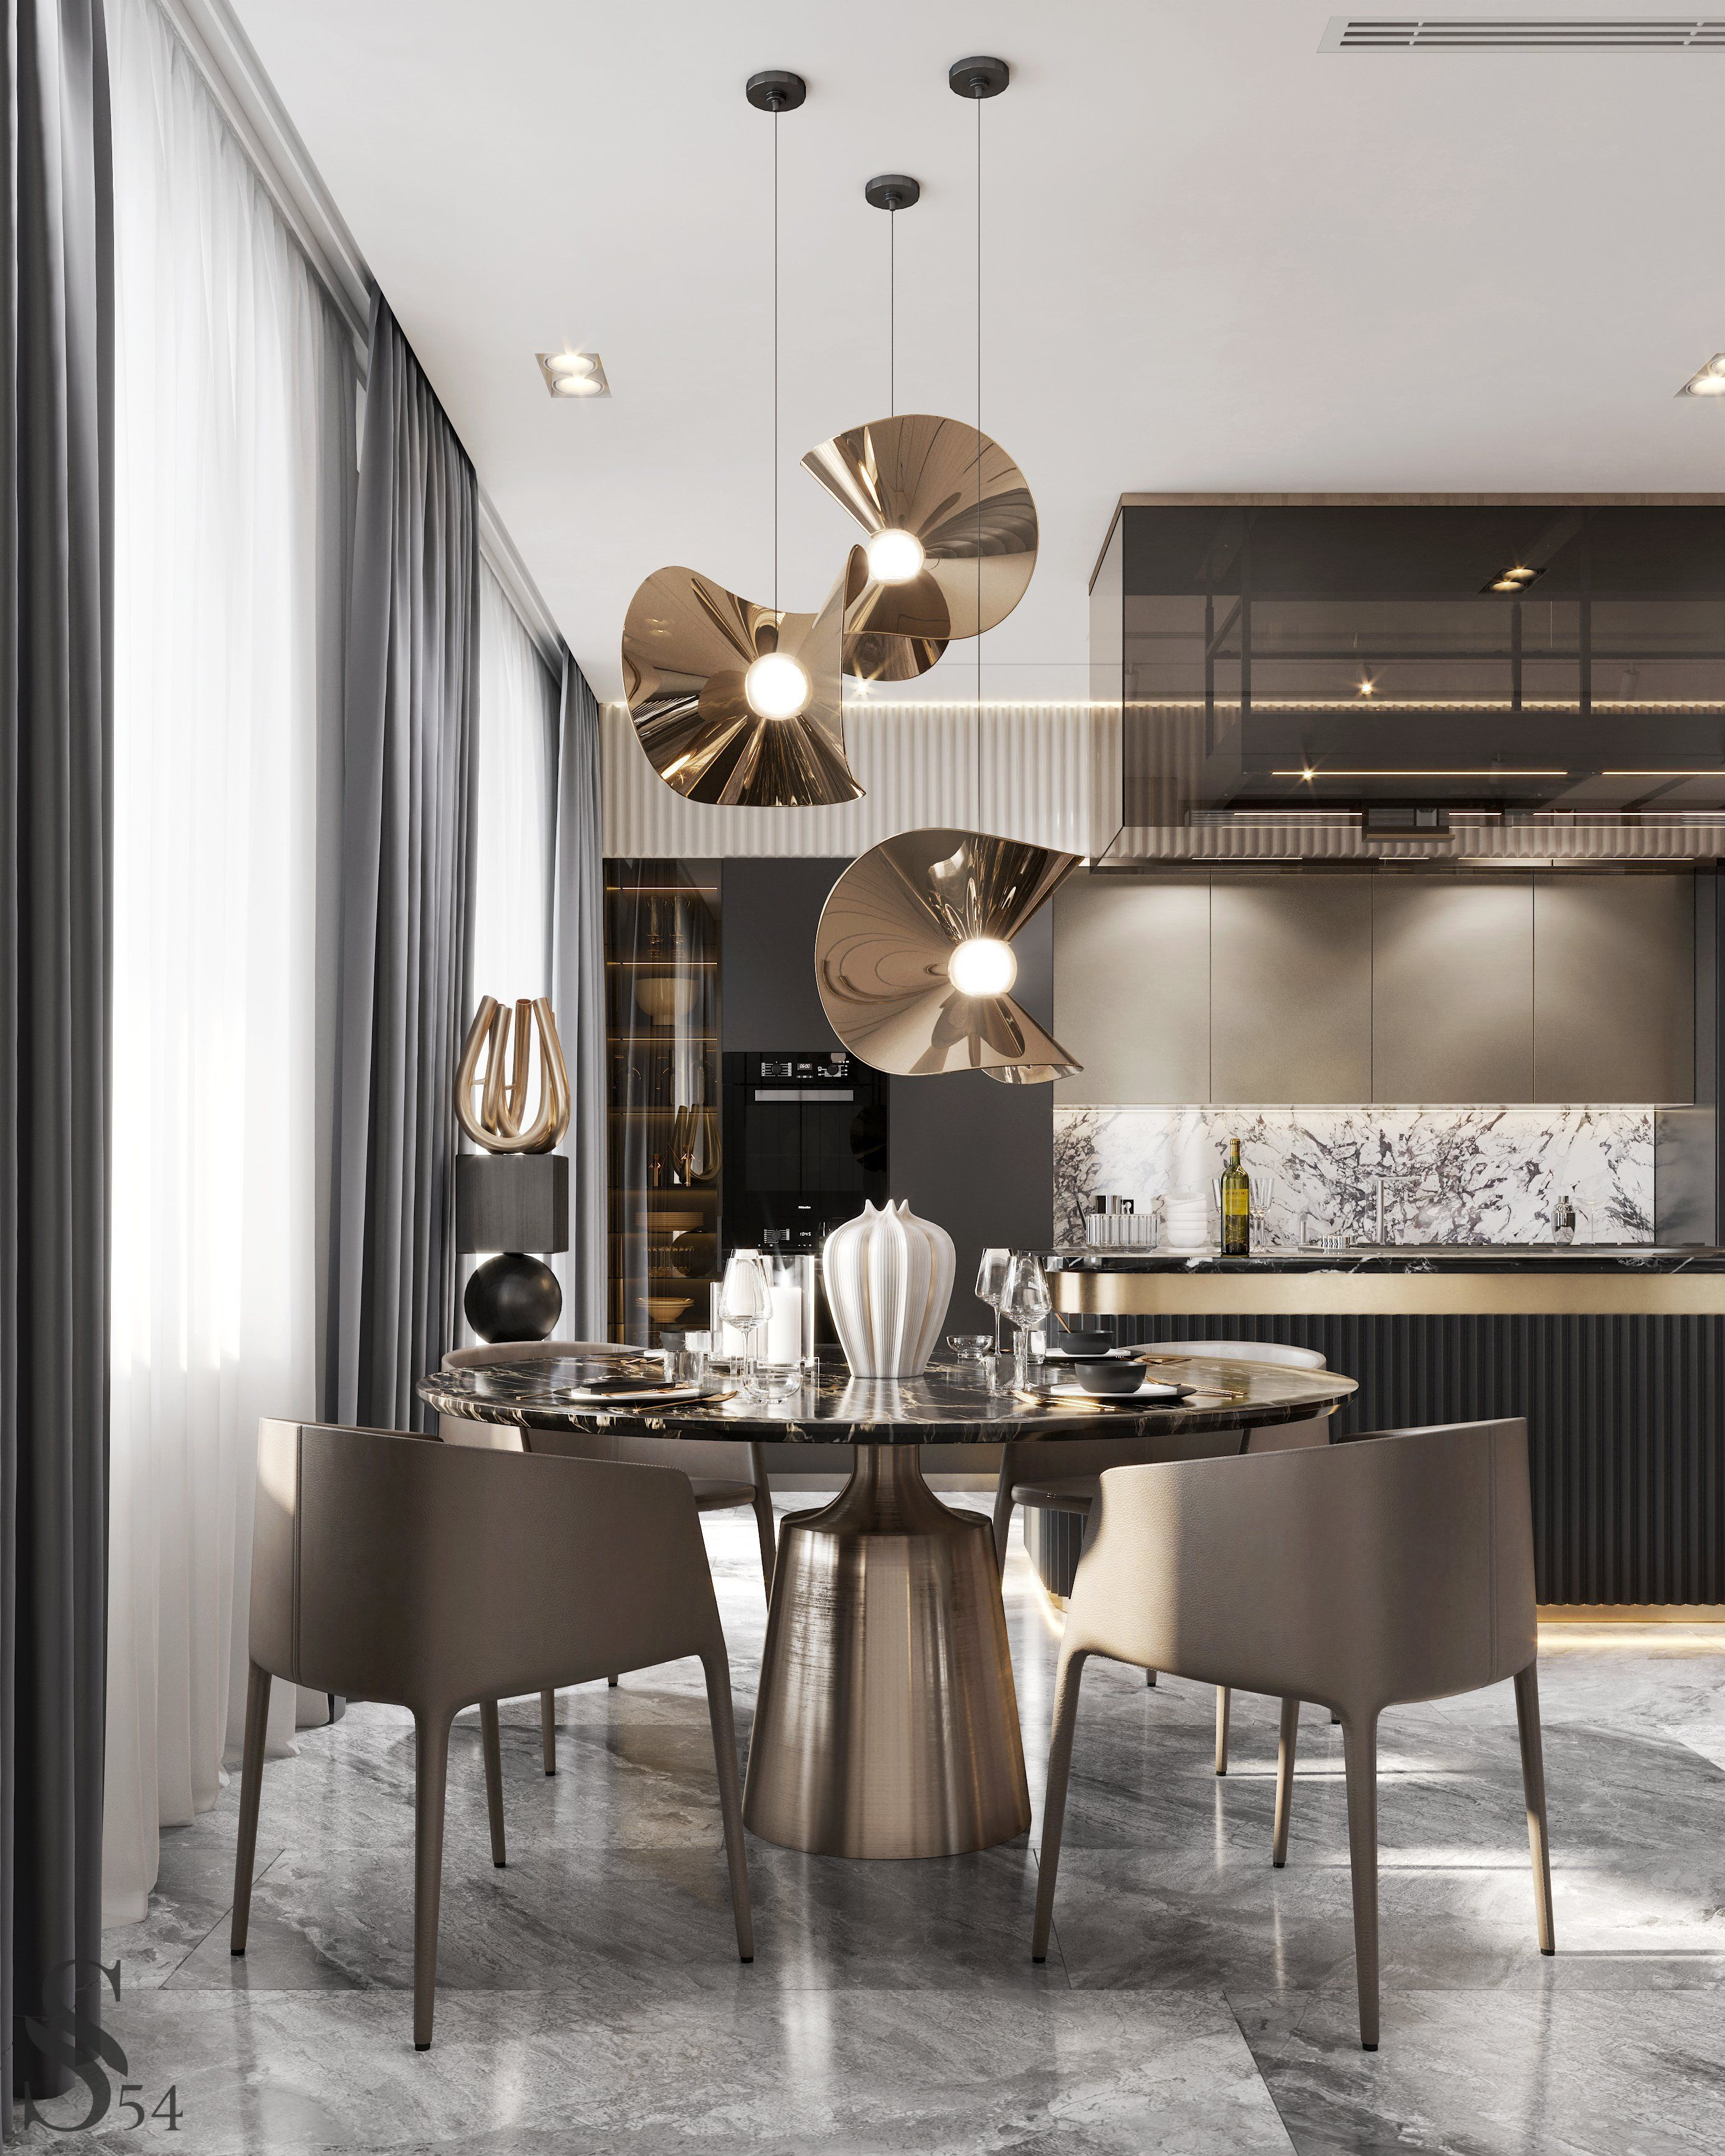 The Latest Luxurious Trends For Your Home Decoration In 2020 Dining Room Design Interior Design Kitchen Modern Kitchen Design